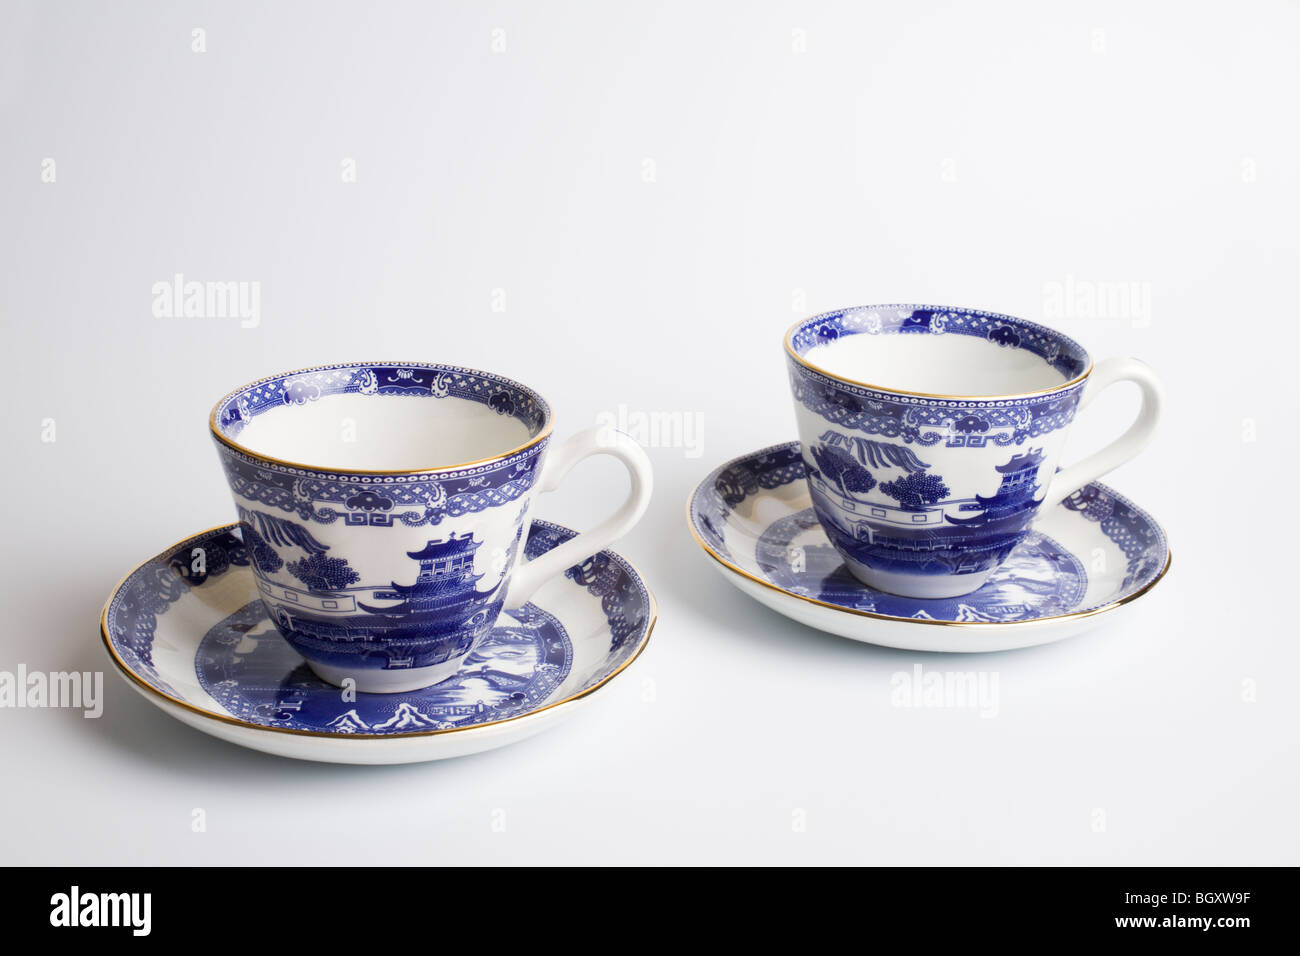 'Willow Pattern' cups & saucers by 'Wade Ceramics'. - Stock Image